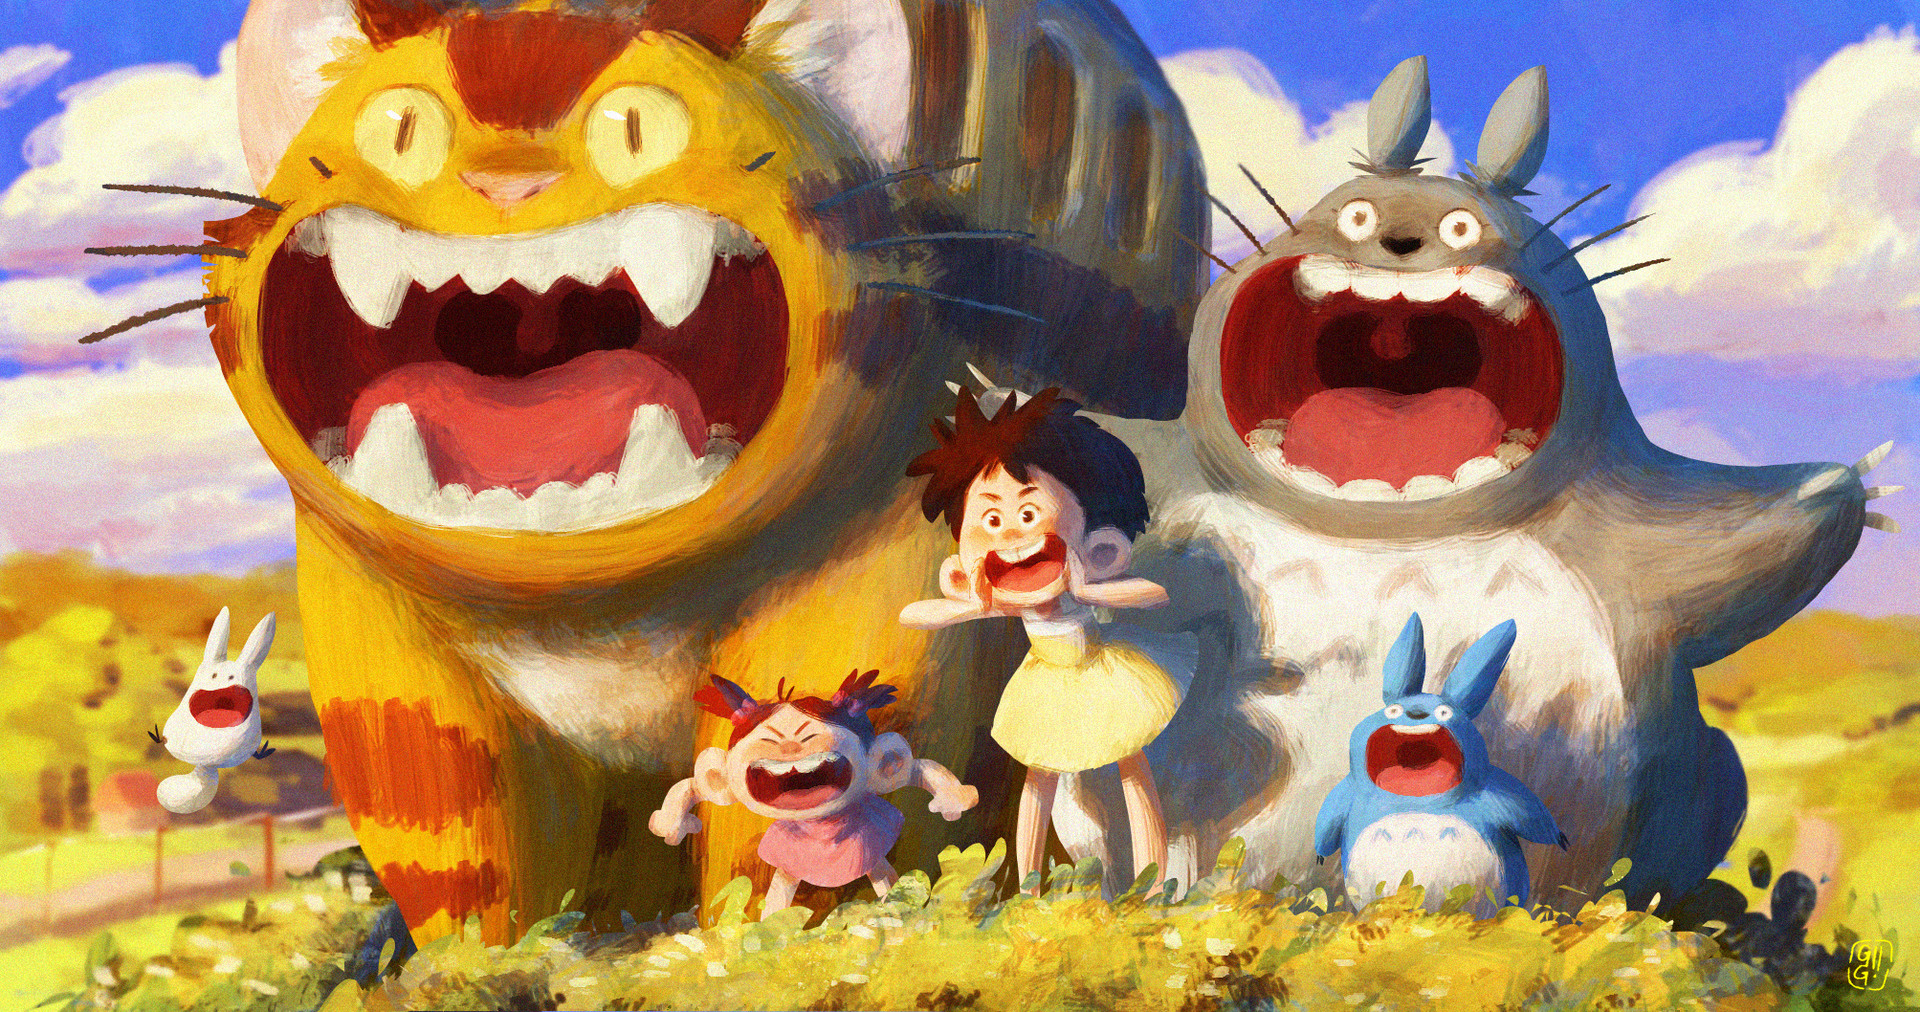 ArtStation - My Neighbor Totoro, Gop Gap